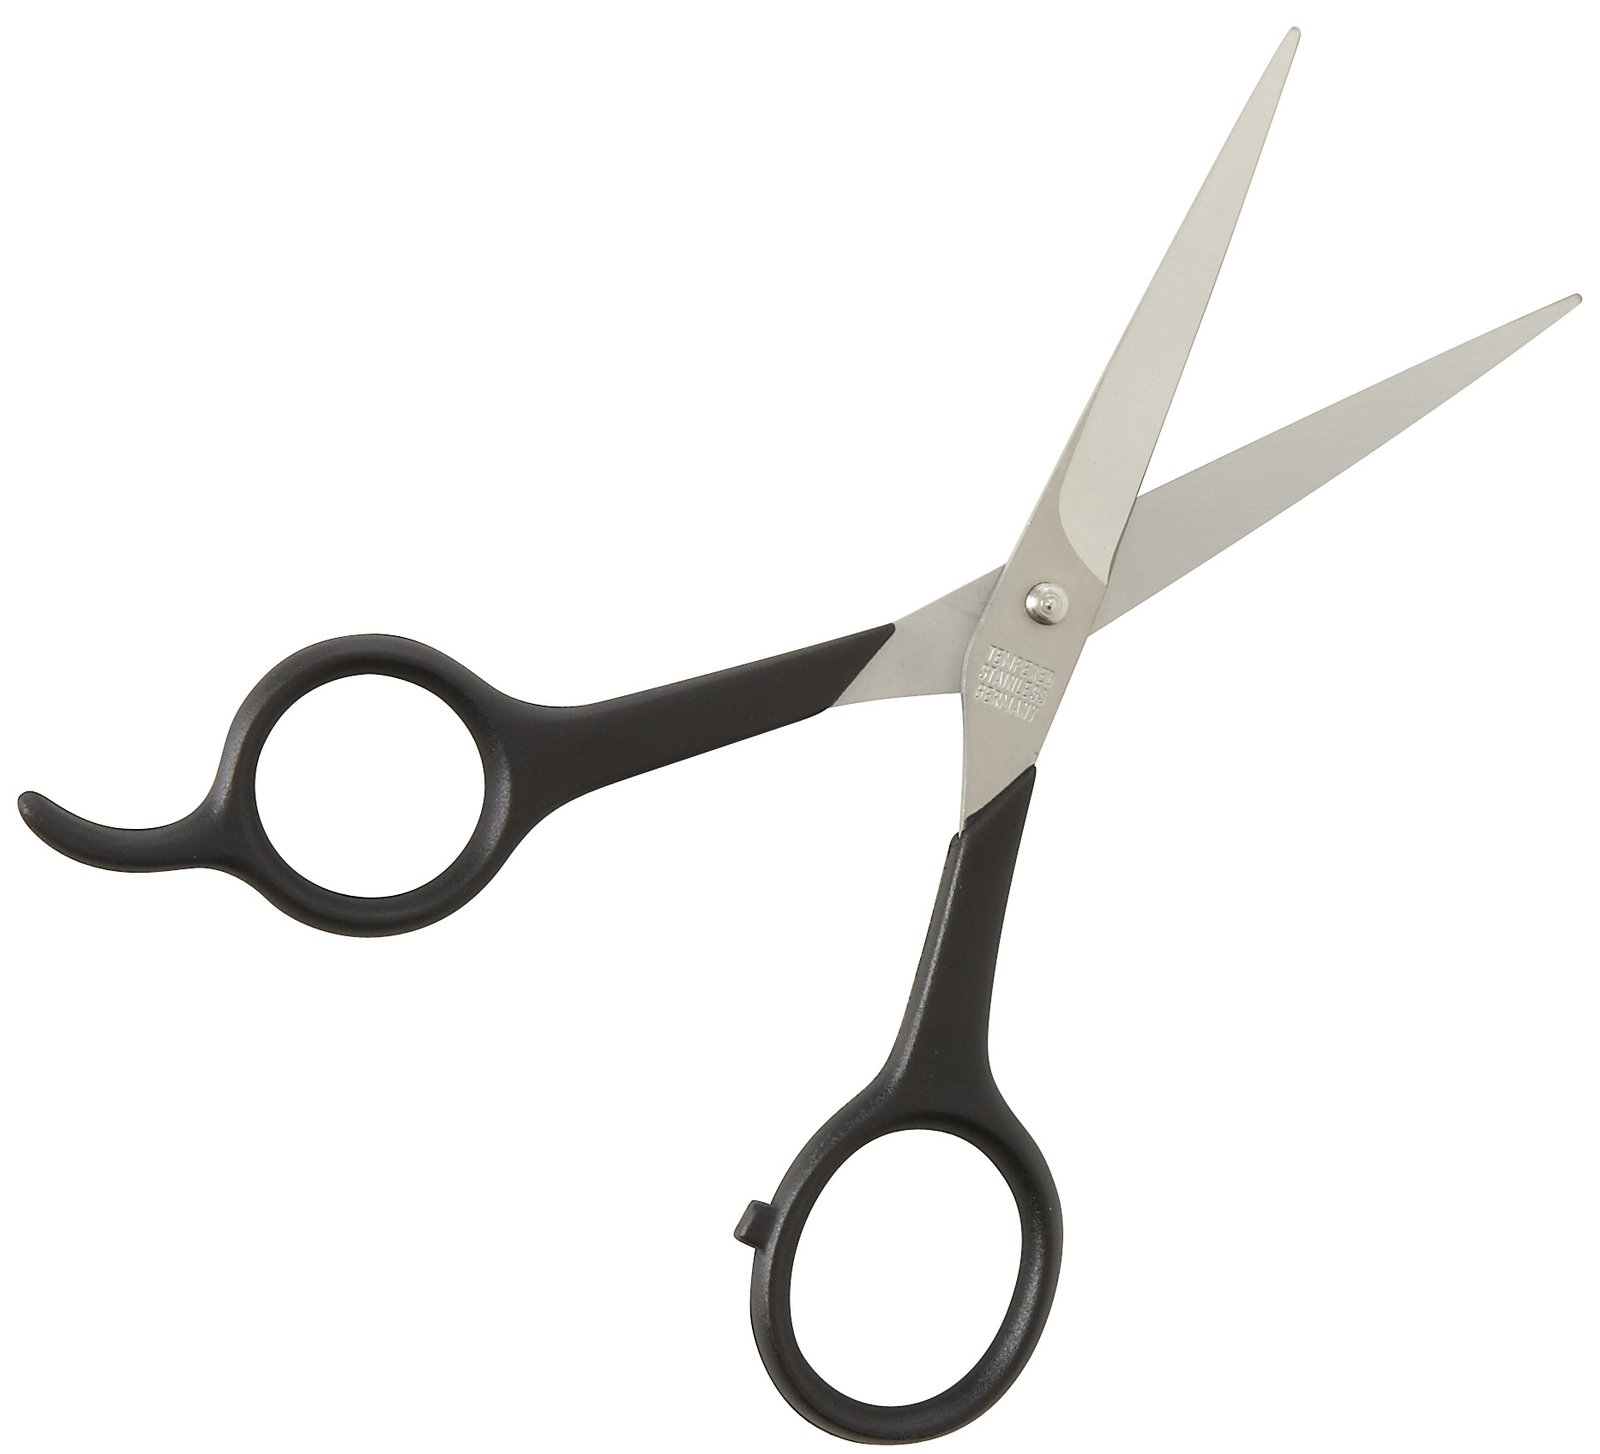 Hairdressing scissors clipart free download clip art